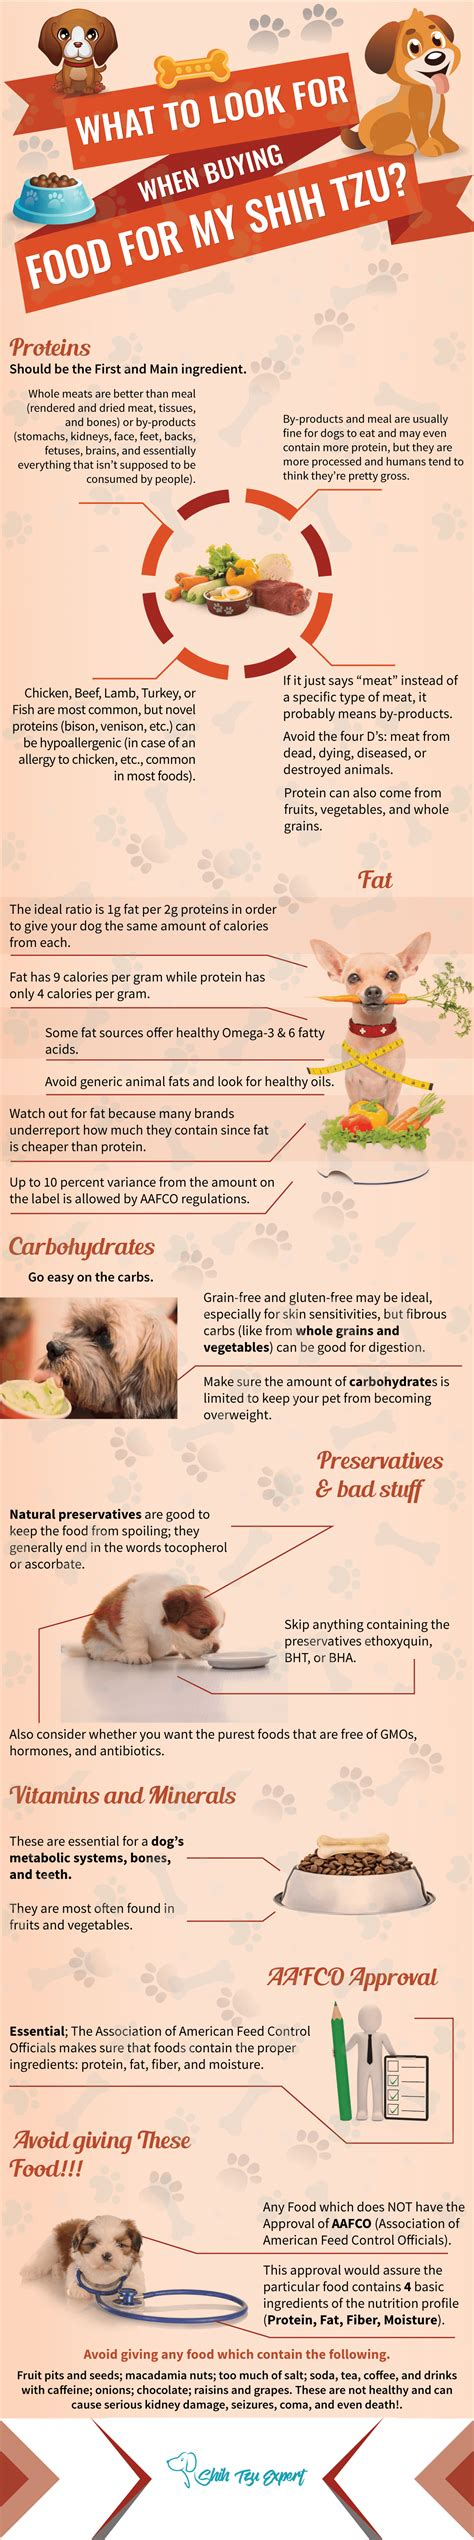 recommended food for shih tzu how to find the best food for shih tzu